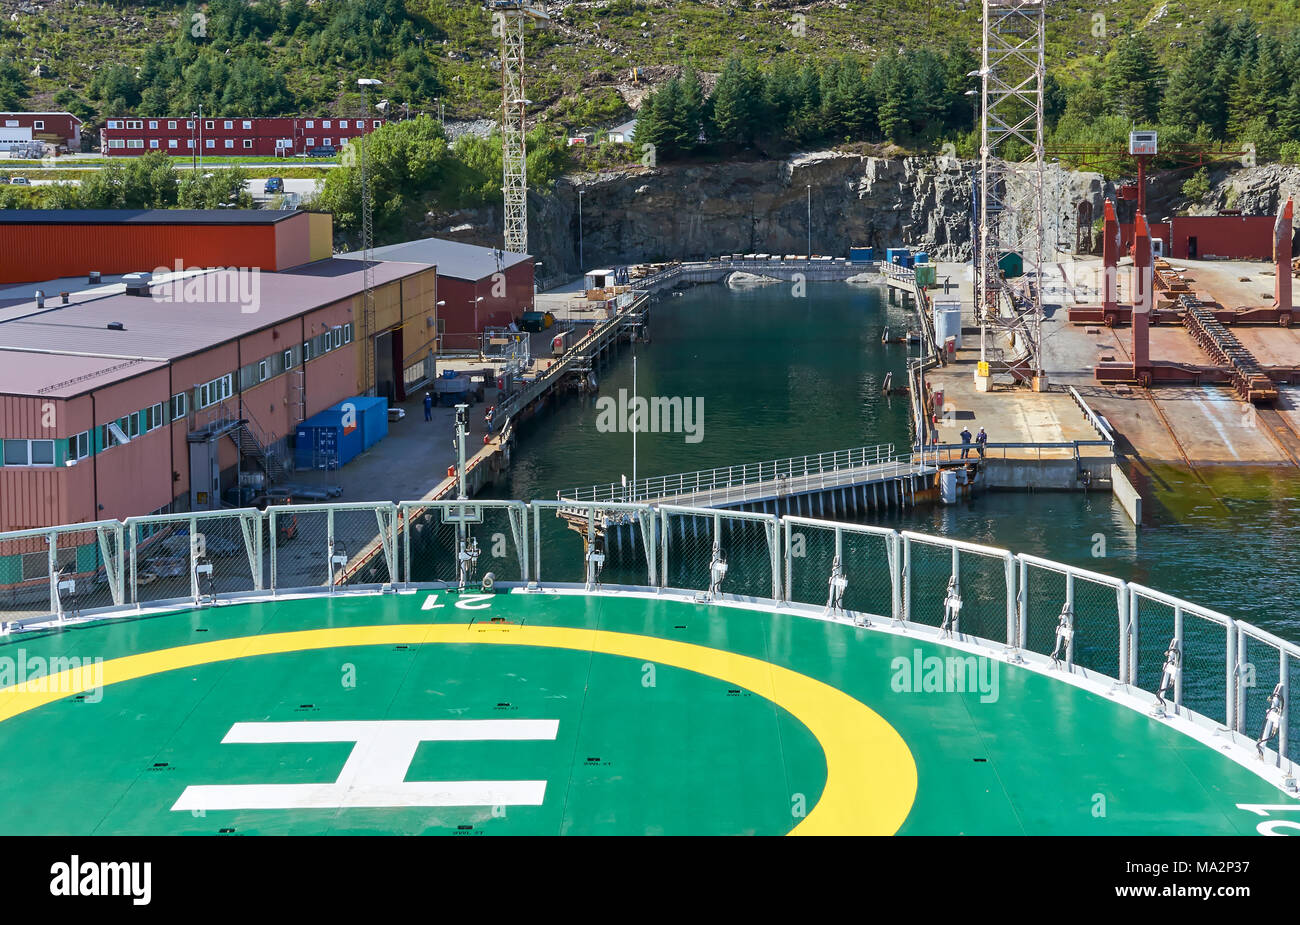 The Oceanic Endeavour slowly reversing out of the water filled Dry Dock at the Baatbygg Shipyard in Maloy, Norway, after having work done. - Stock Image